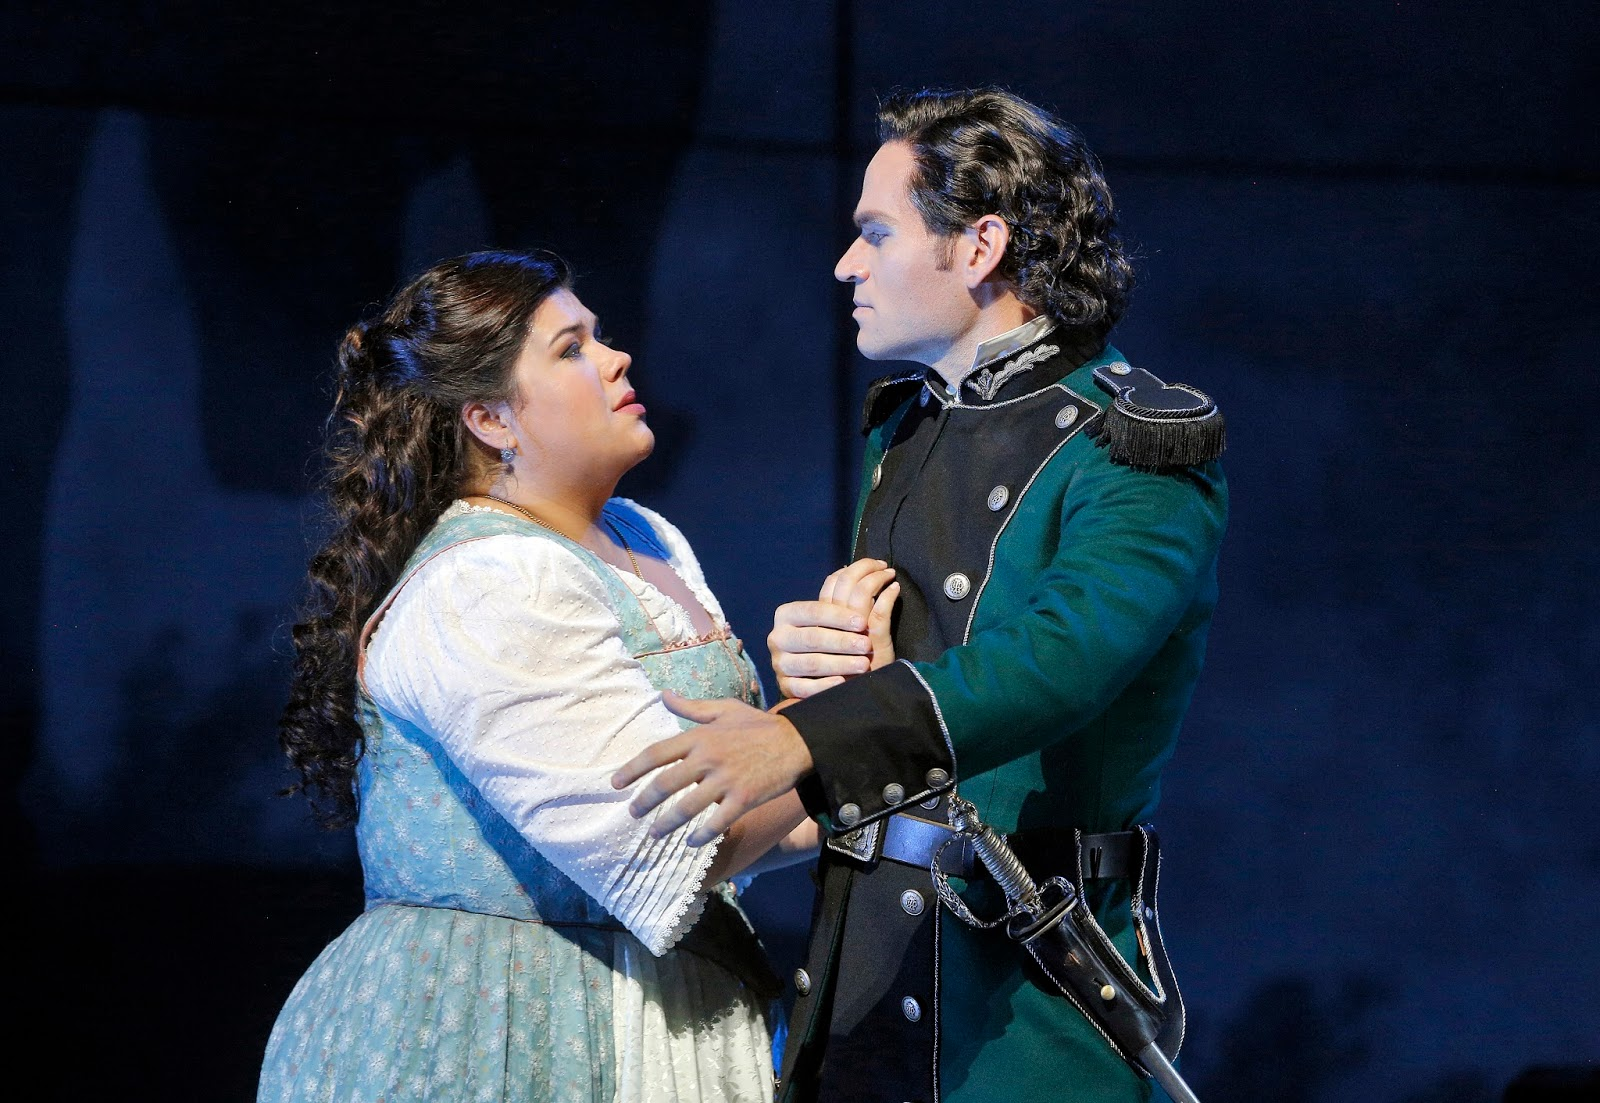 IN REVIEW: Soprano LEAH CROCETTO (left) as the titular heroine in San Francisco Opera's 2015 production of Giuseppe Verdi's LUISA MILLER, with tenor Michael Fabiano as Rodolfo [Photograph by Cory Weaver, © by San Francisco Opera]